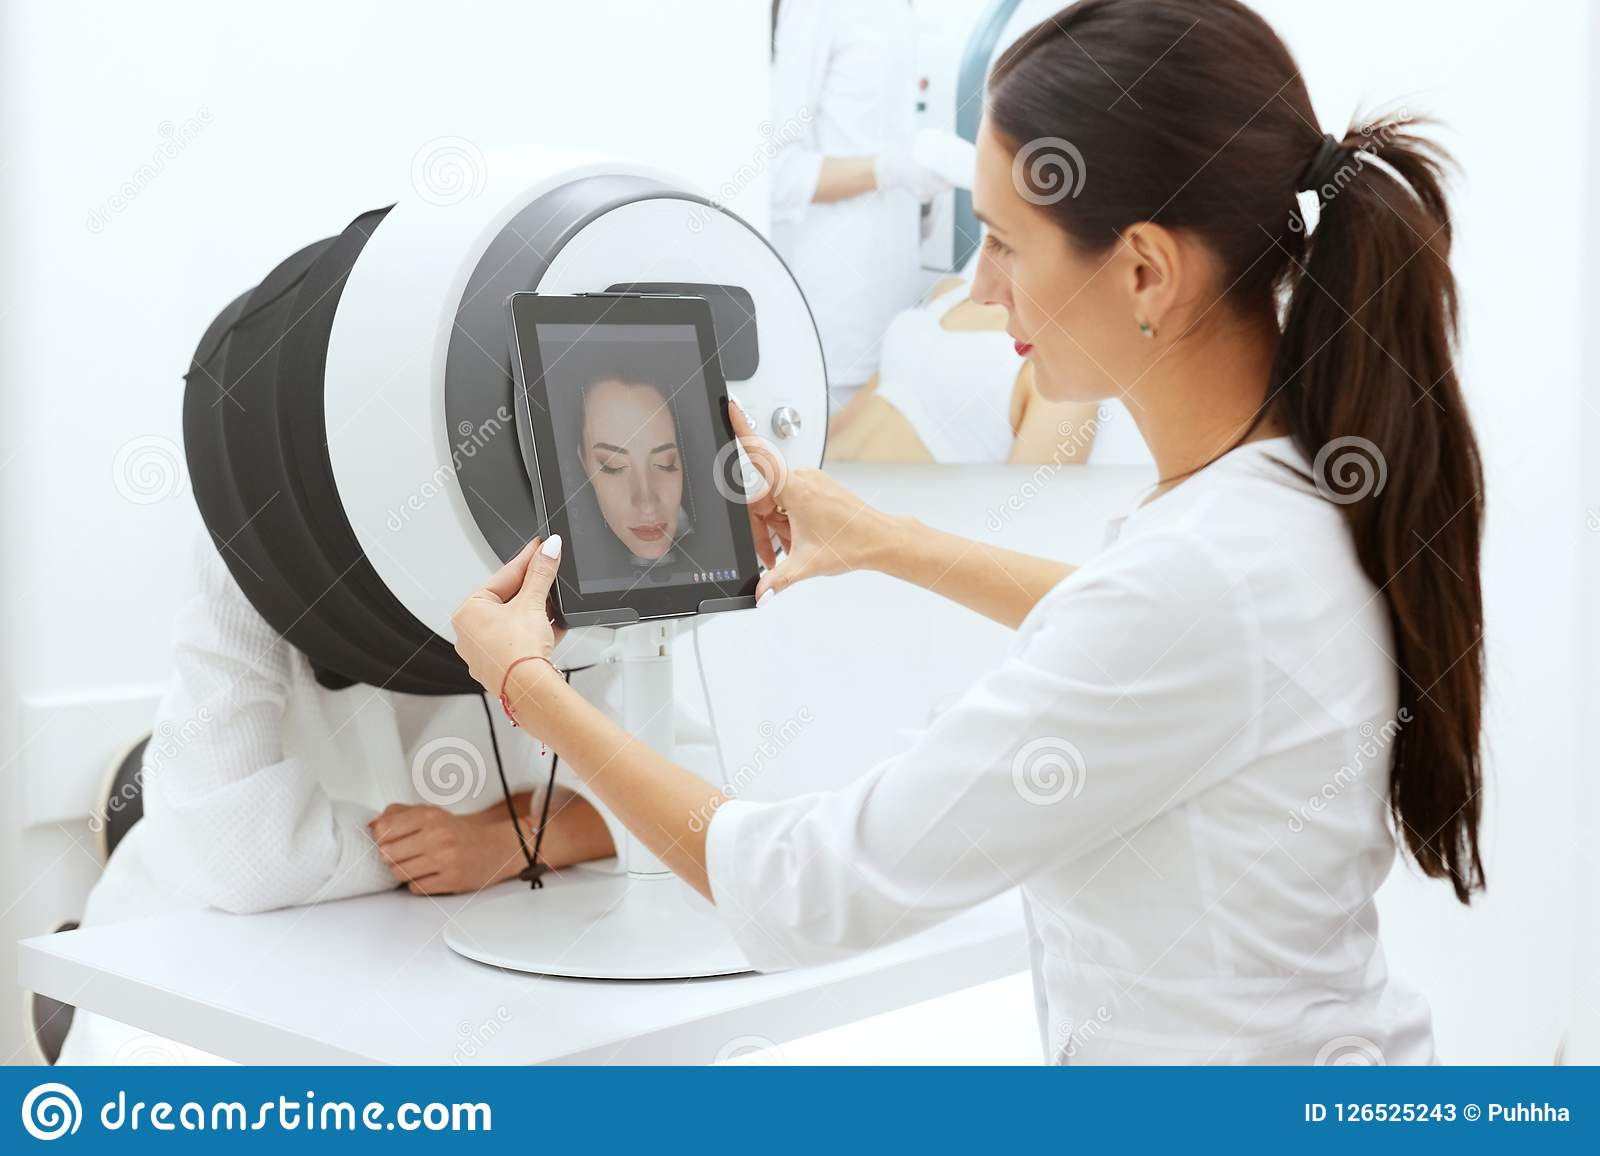 Face Skin Analysis. Woman At Cosmetology Doing Skin Diagnostic